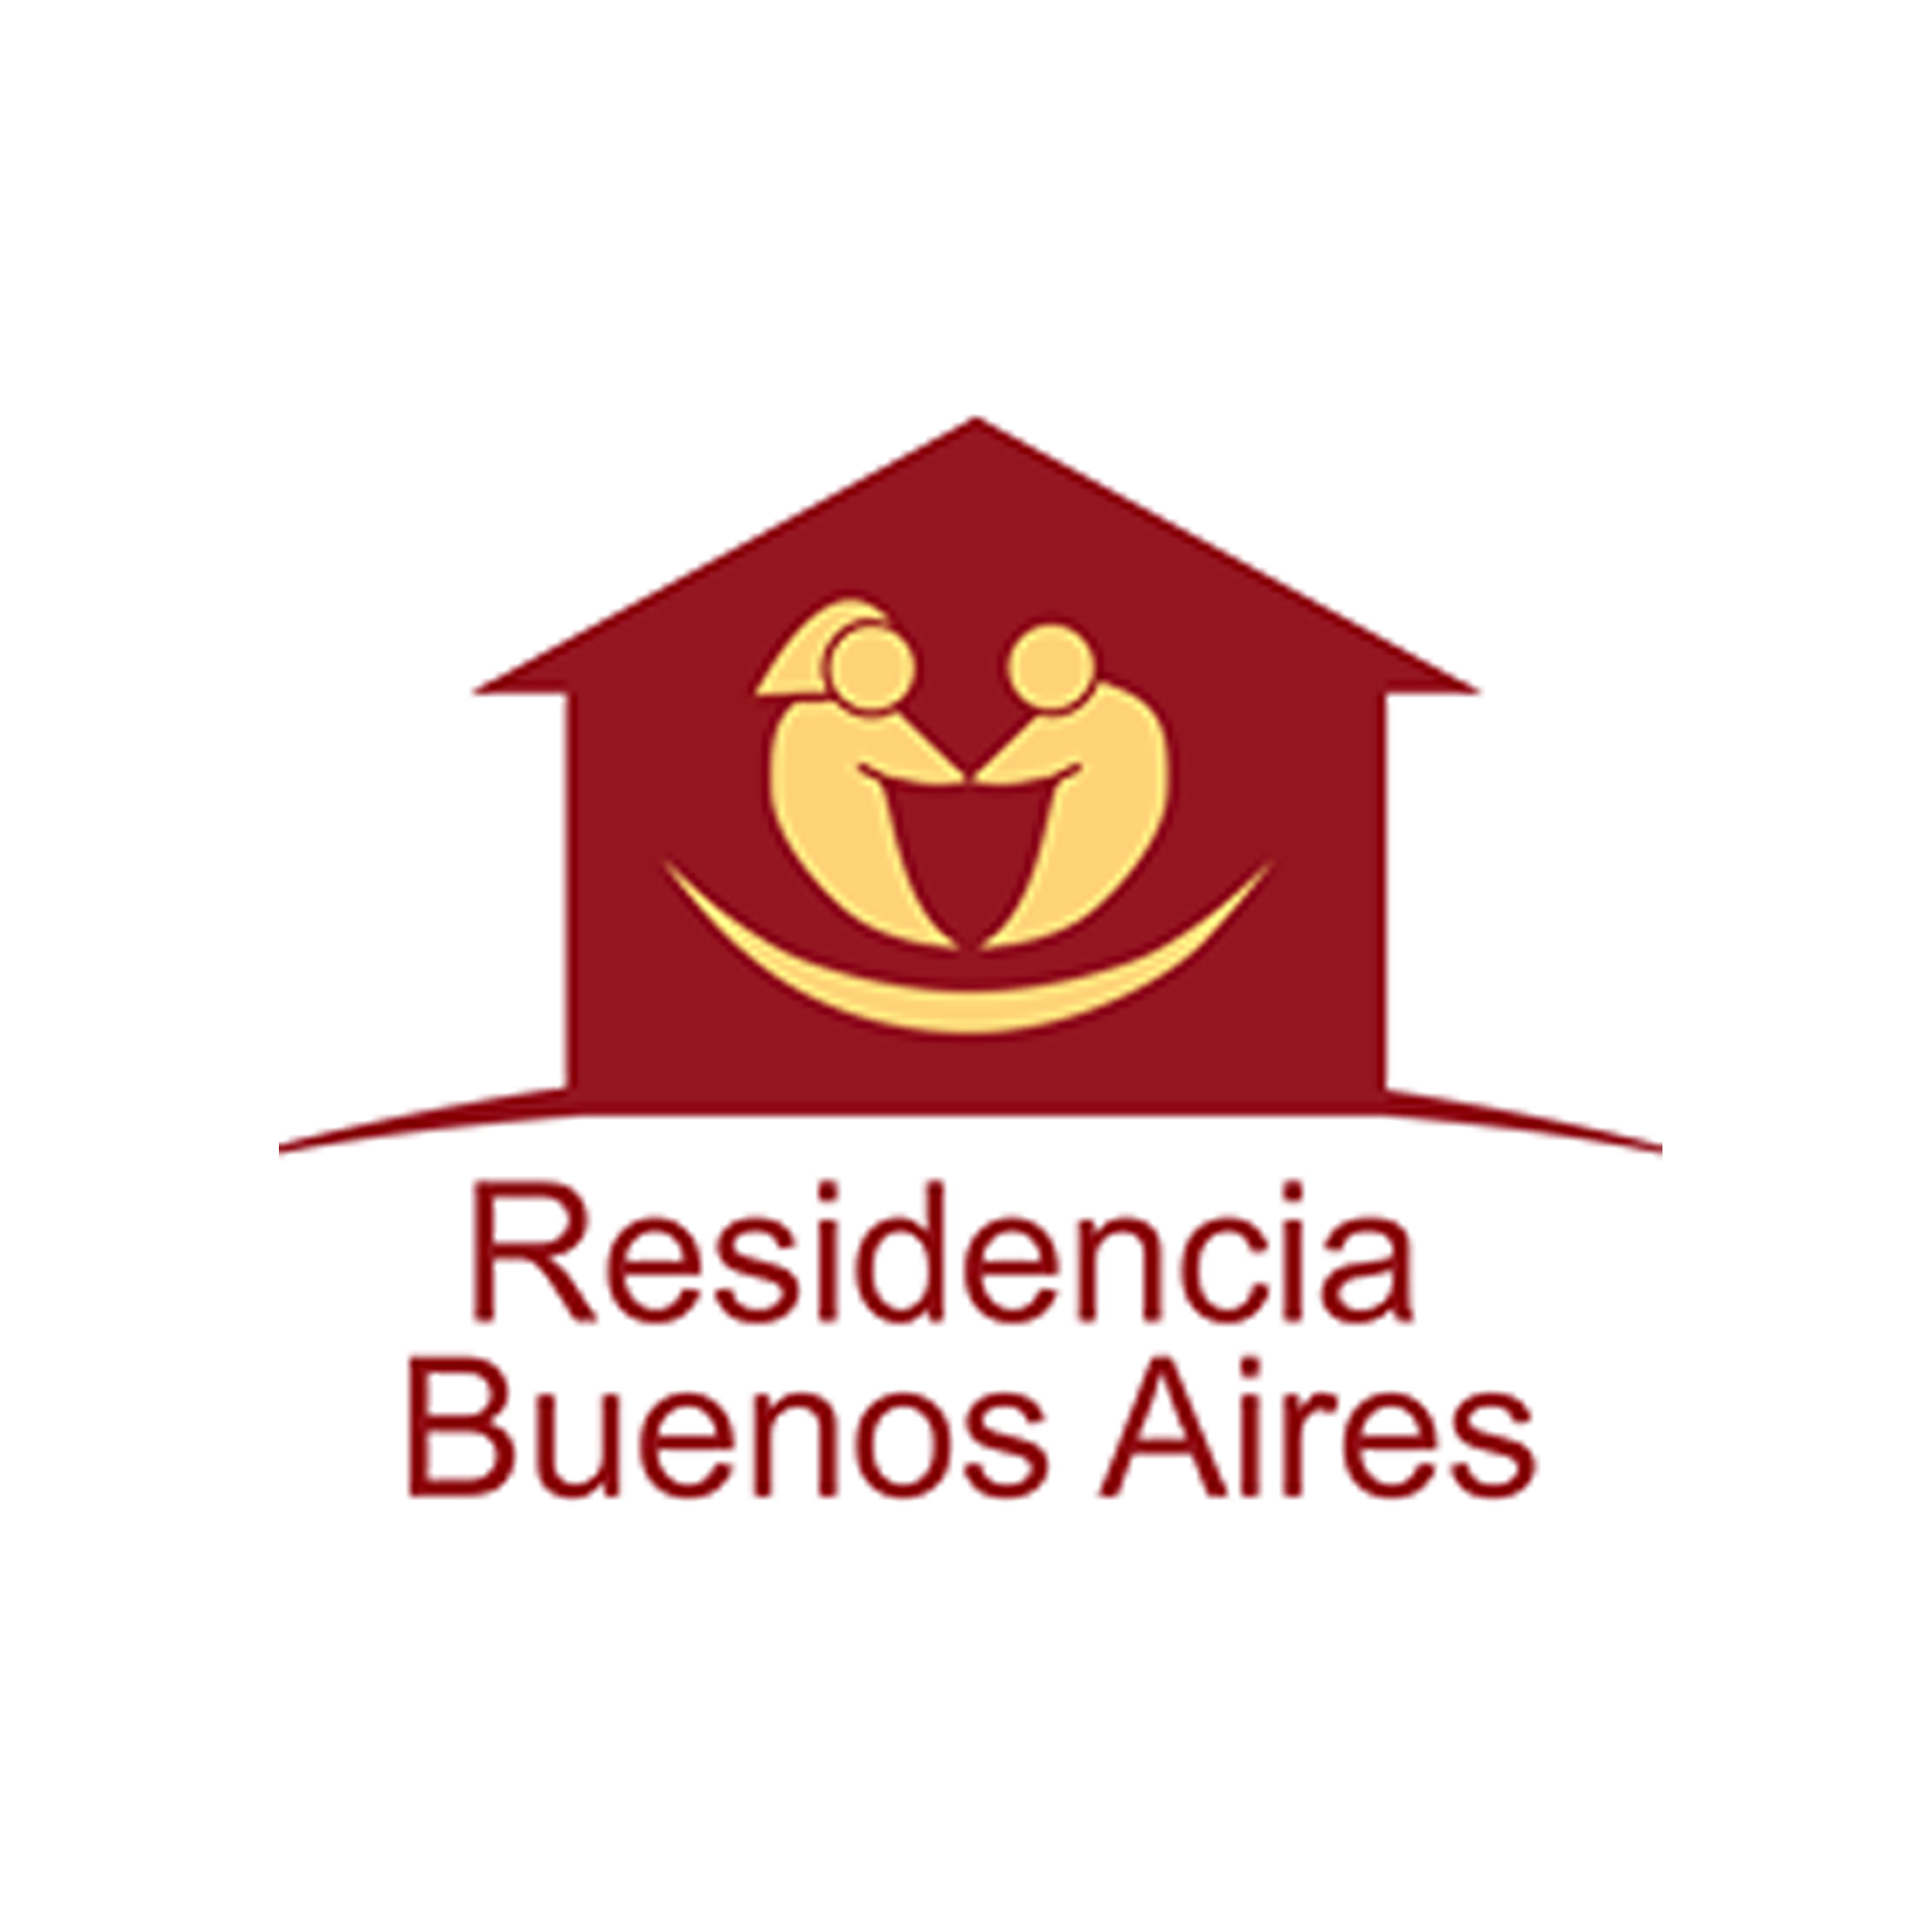 Residencia Buenos Aires Leon Rugby Club